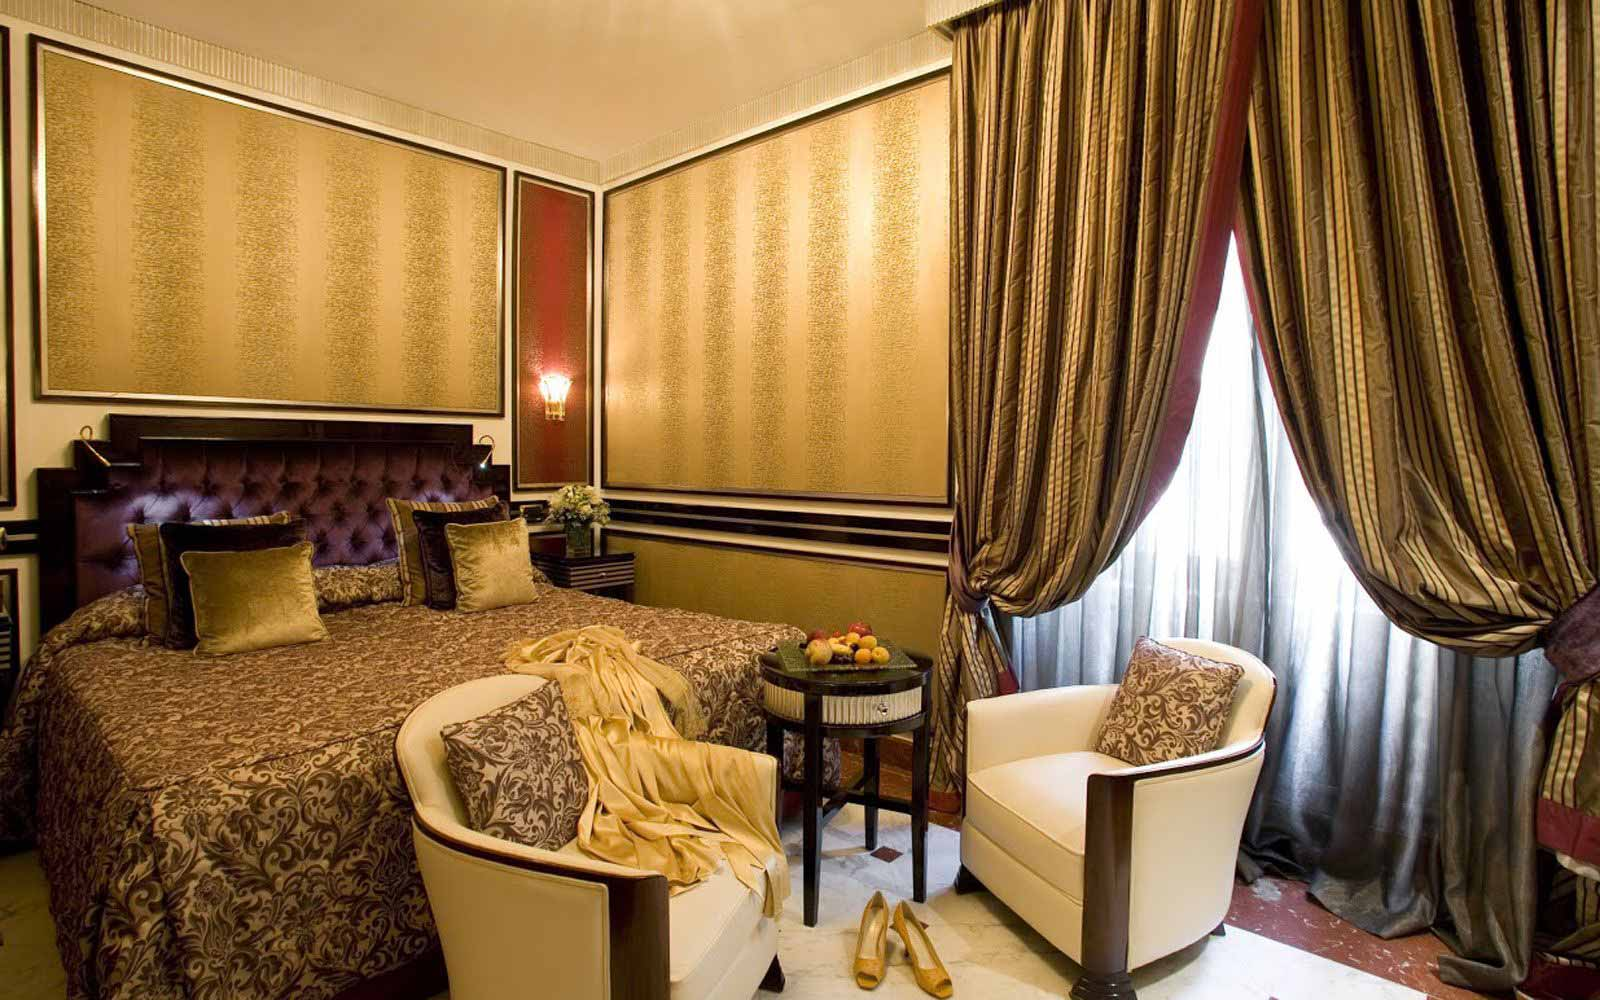 Grand deluxe room at Regina Hotel Baglioni